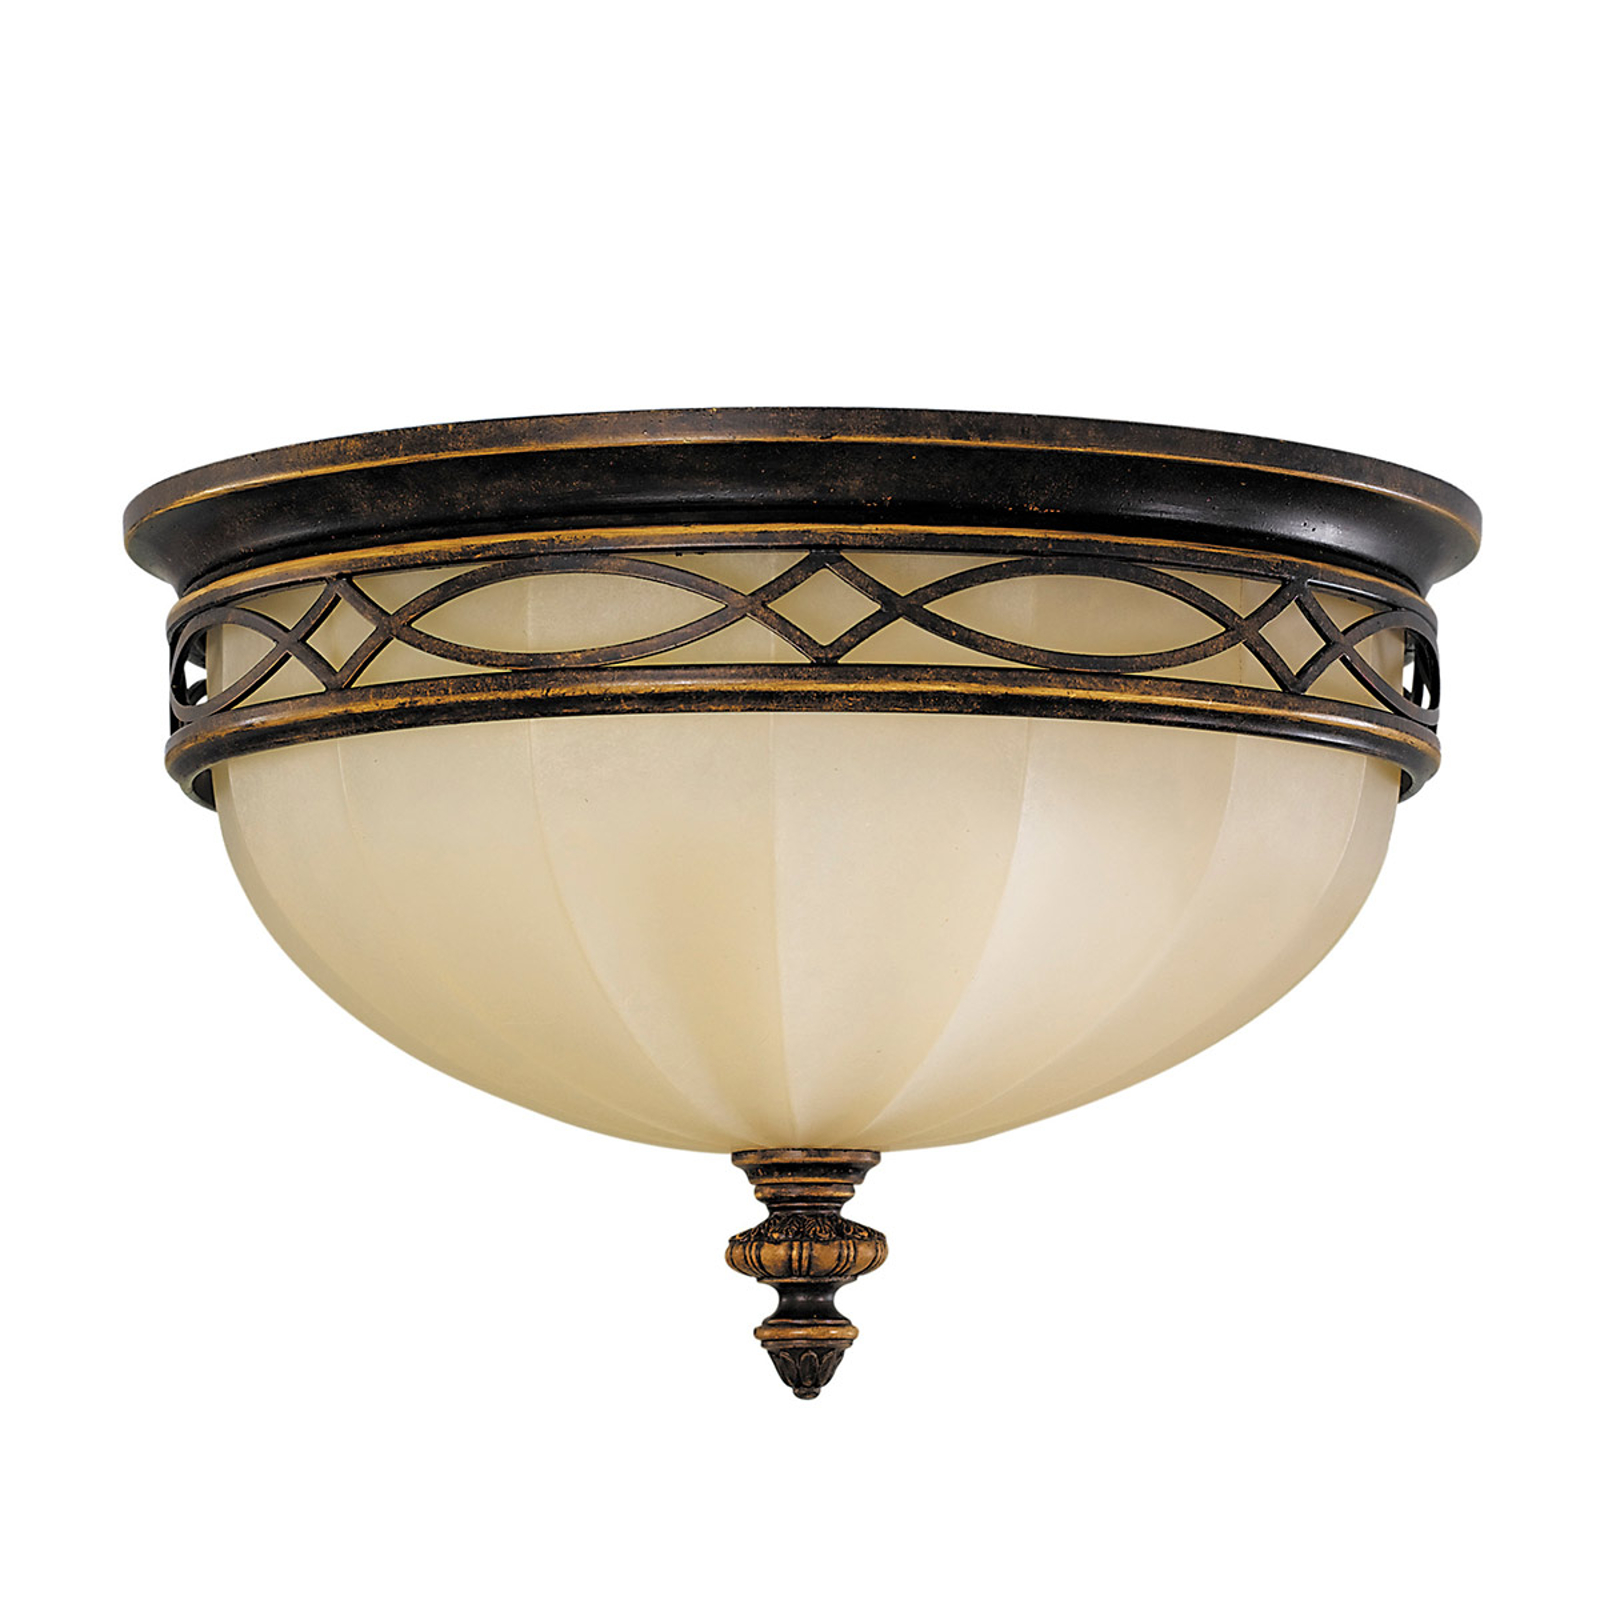 Drawing Room Ceiling Light with Scavo Glass_3048239_1